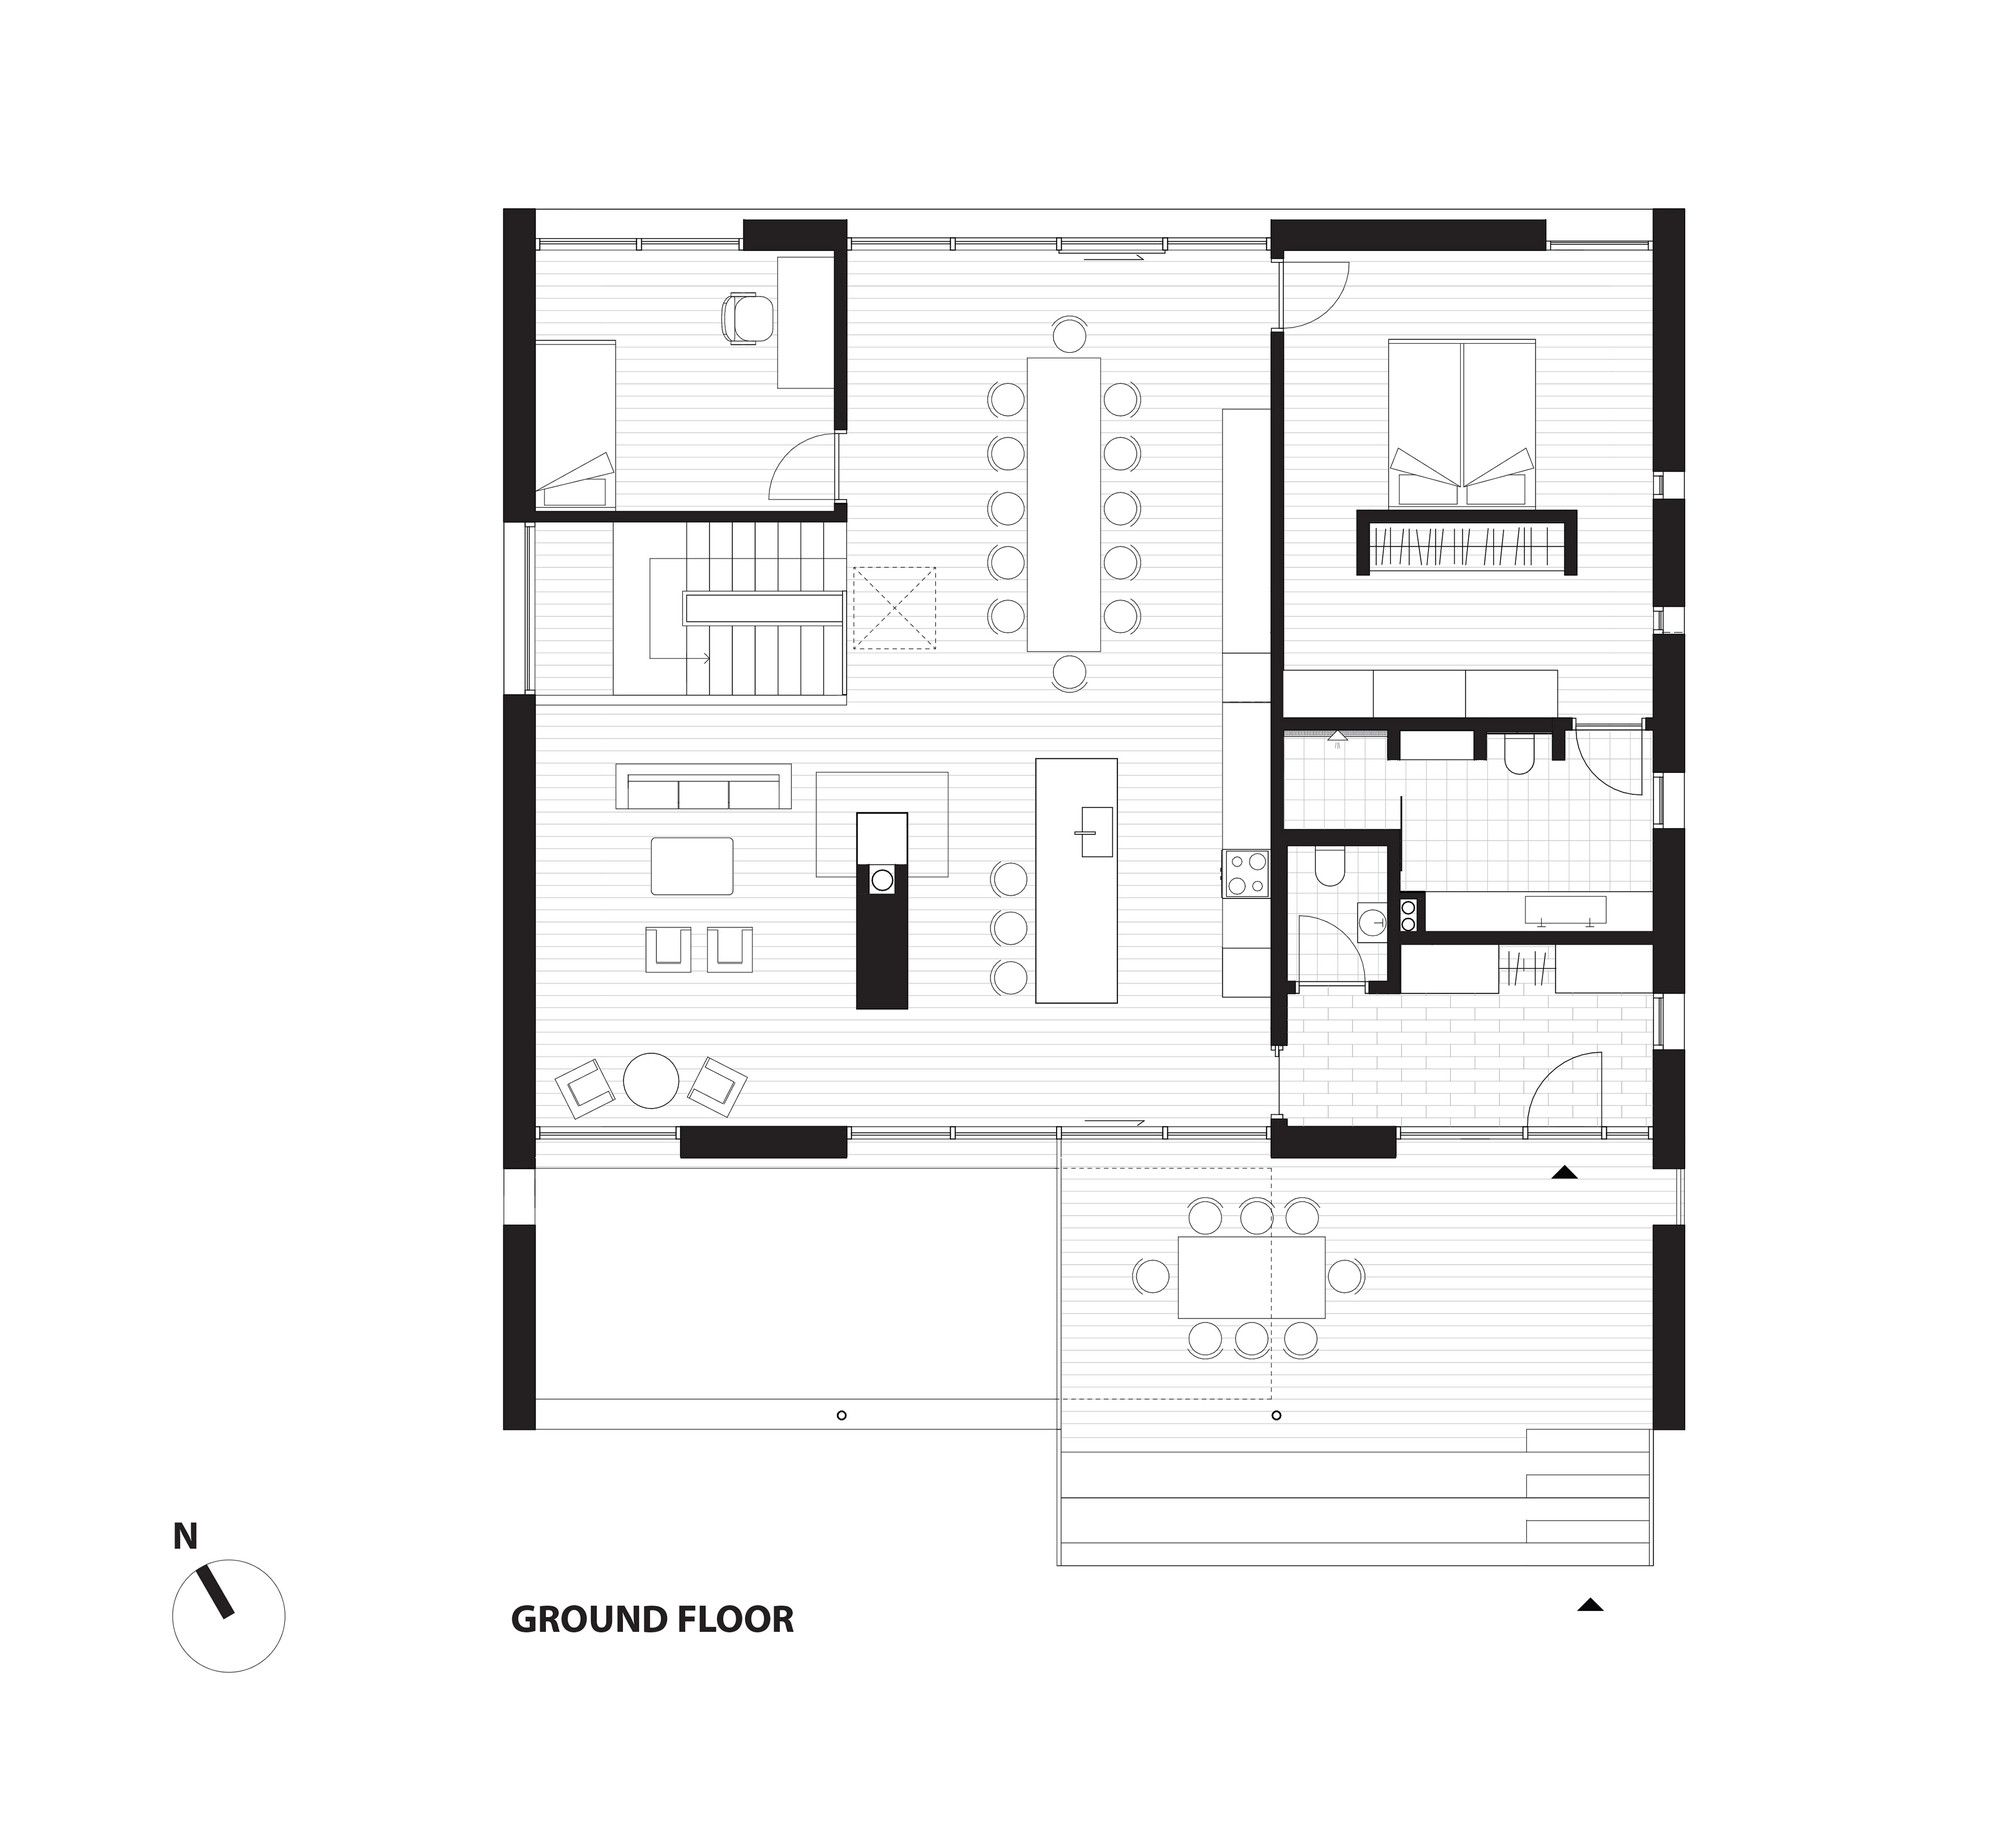 Villa r c f m ller architects plataforma arquitectura for Copying house plans